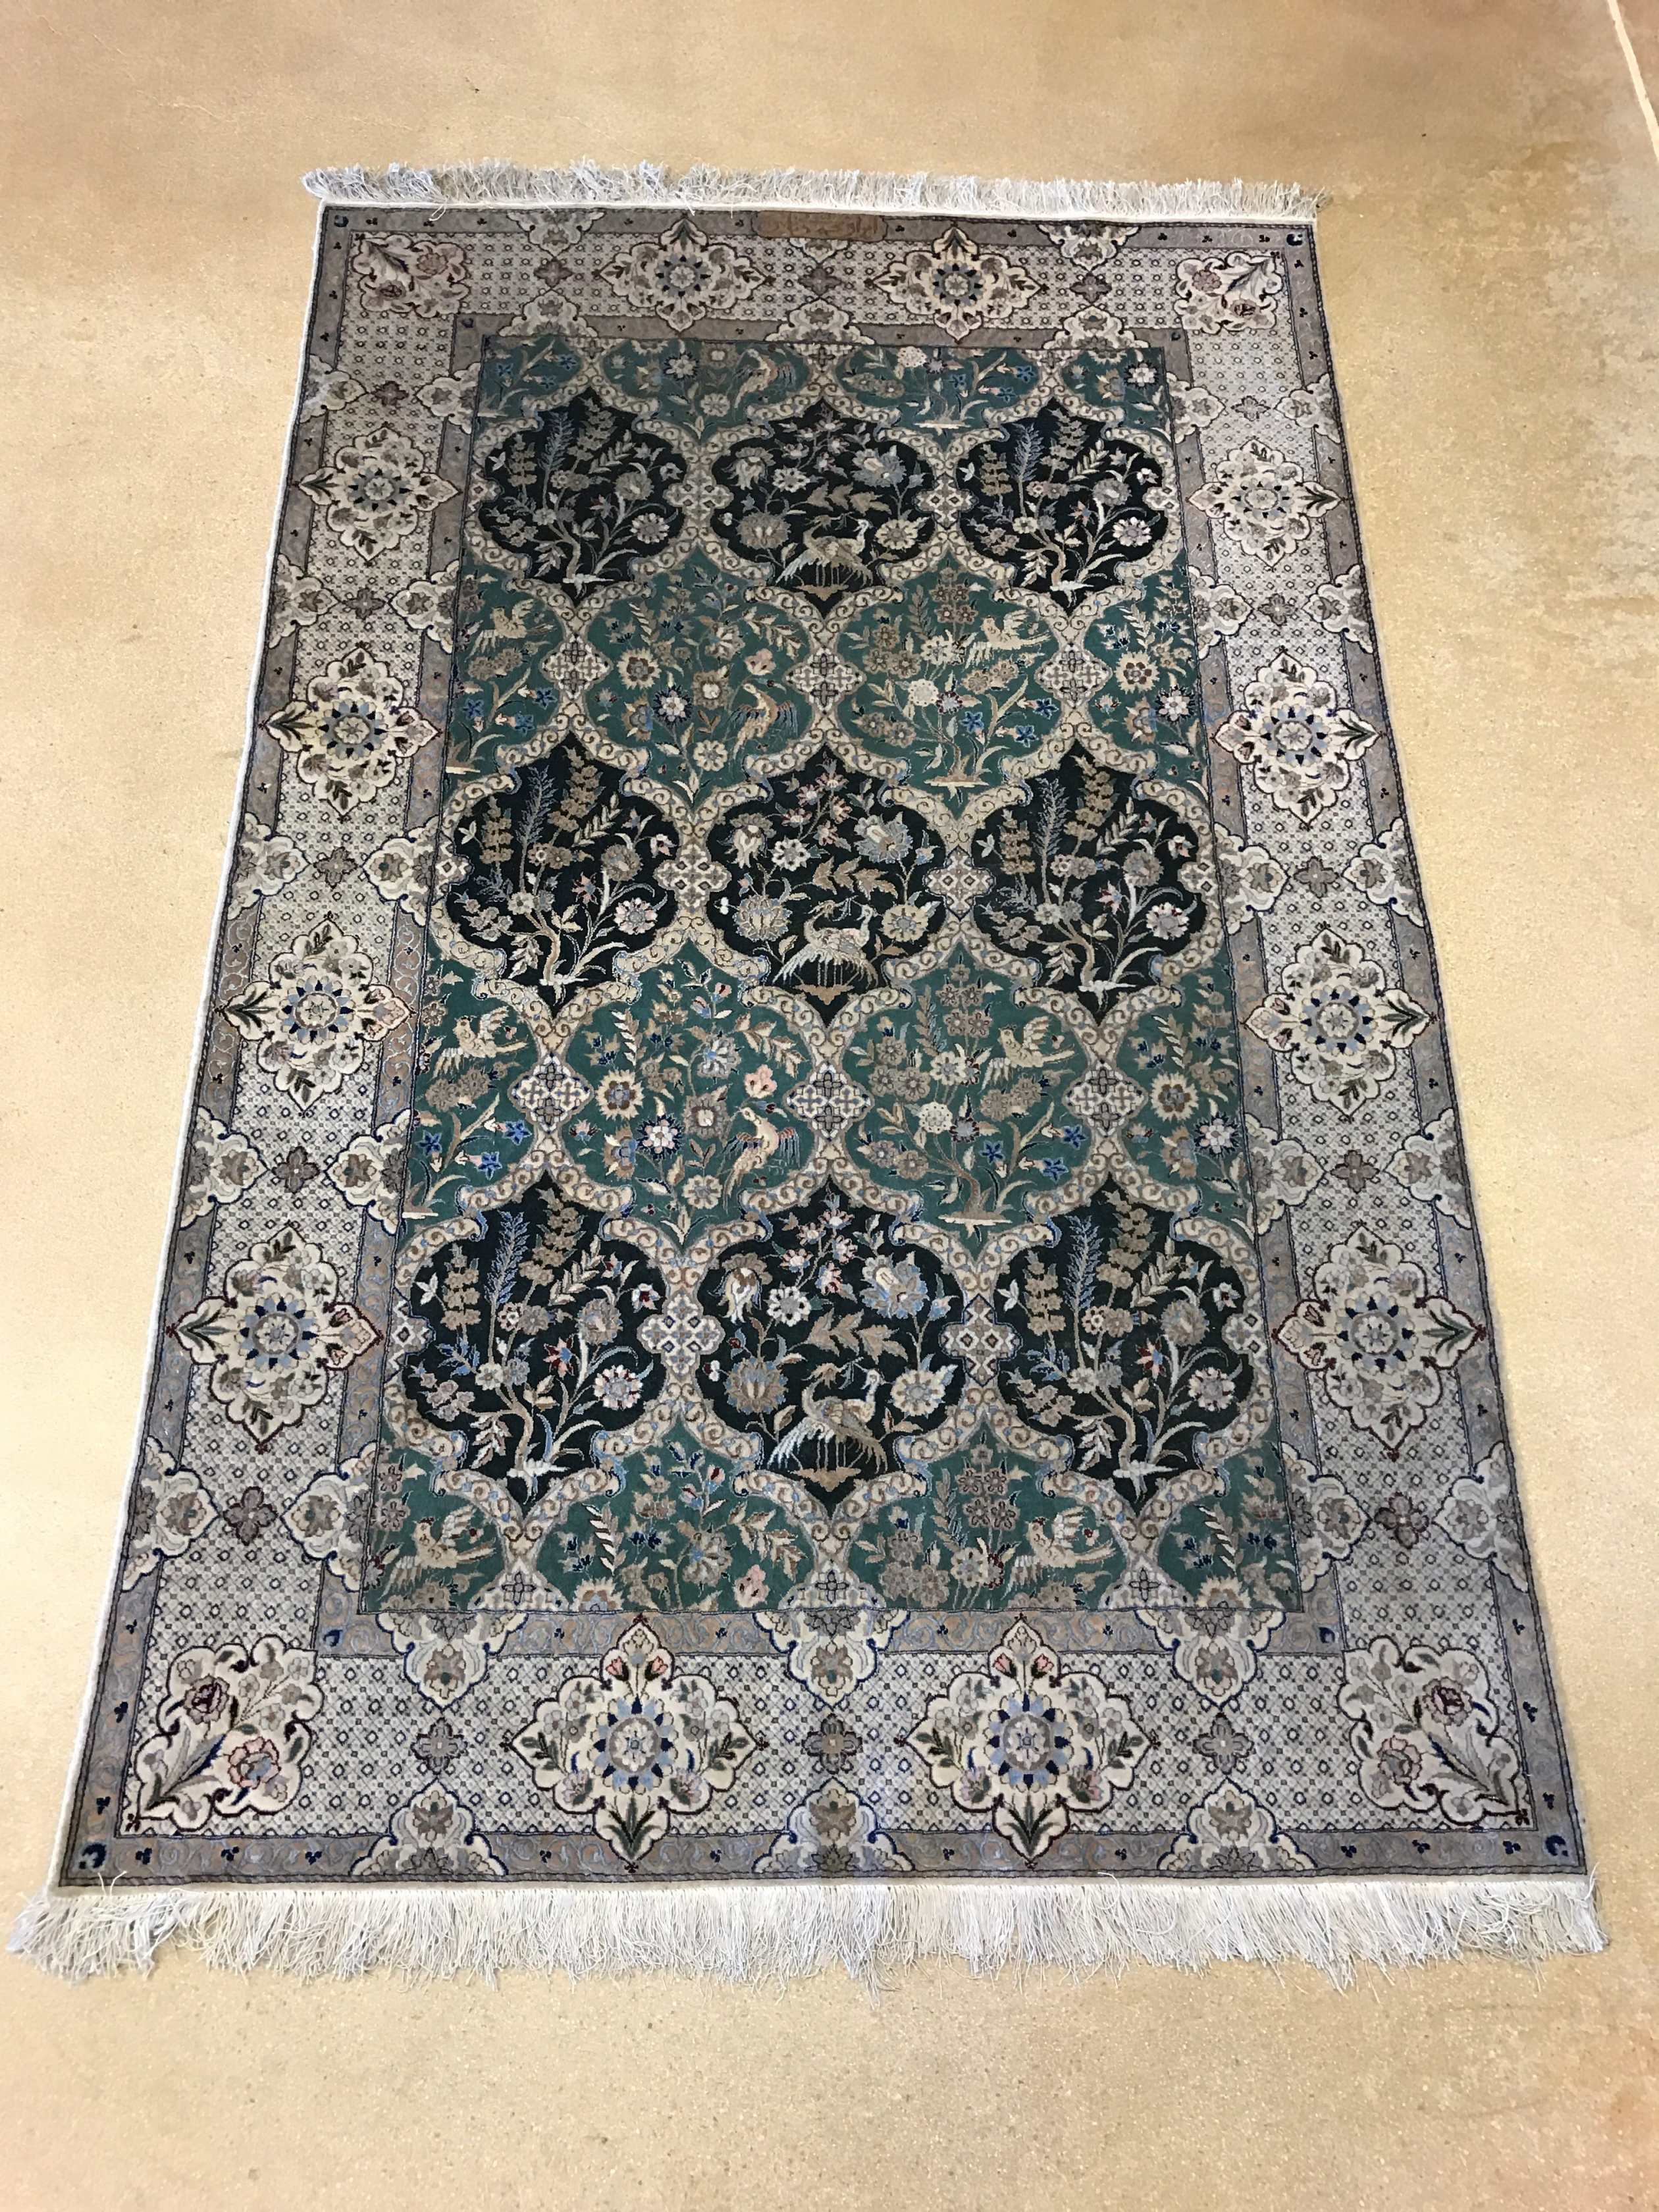 size rugs outdoor oriental themed color cleaning in full pink grey teal of rug beach ocean large magnificent and scenic area wonderful ru